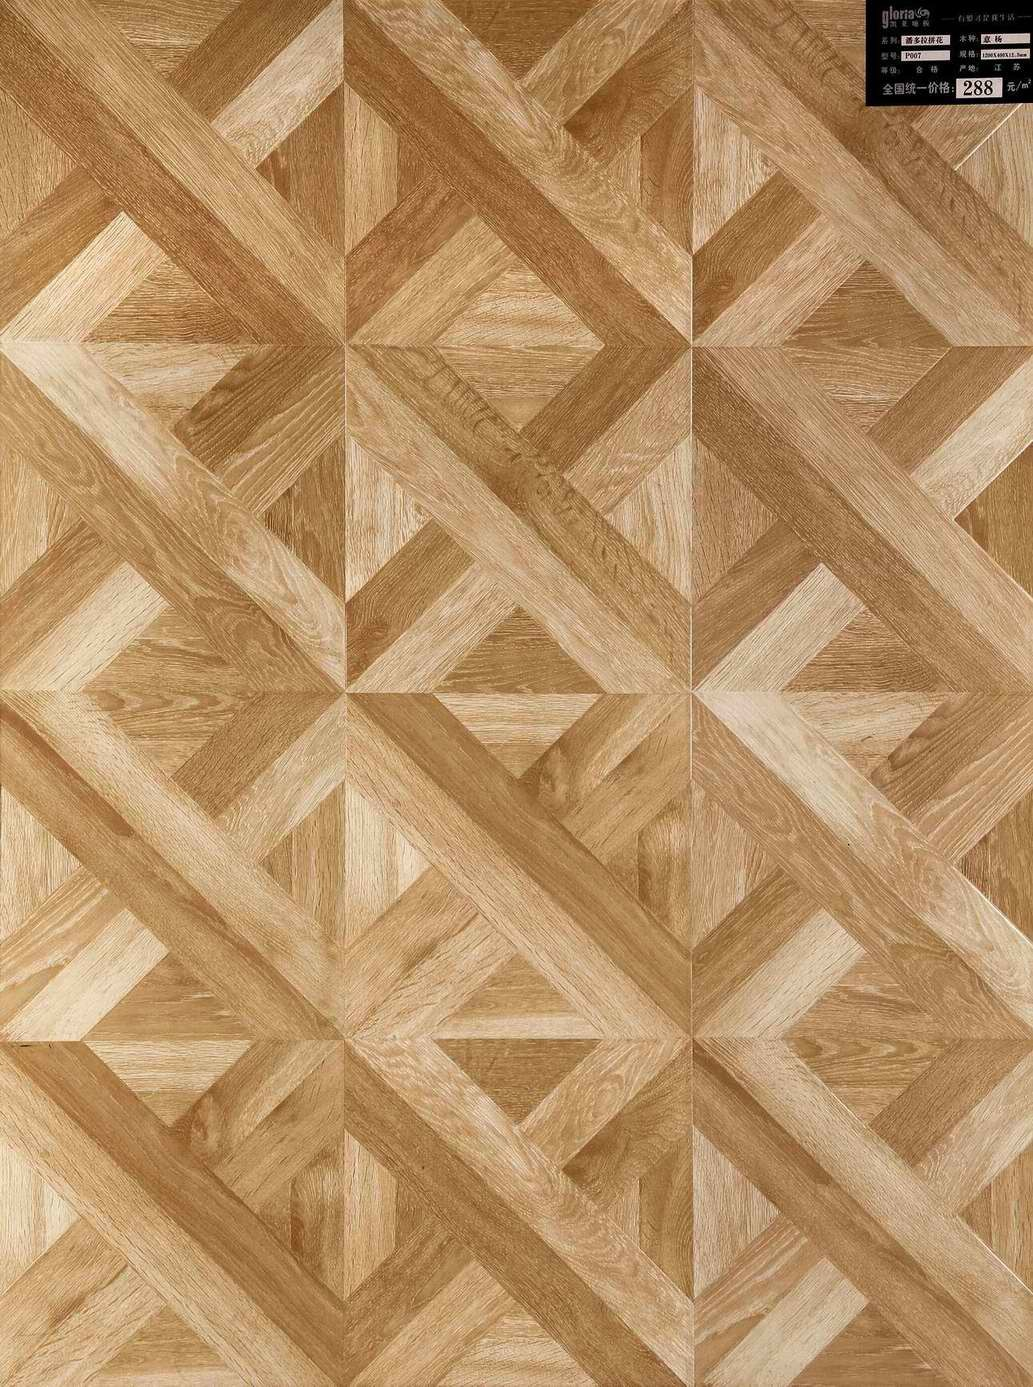 unique flooring option that stands up to real-life water, moisture ...